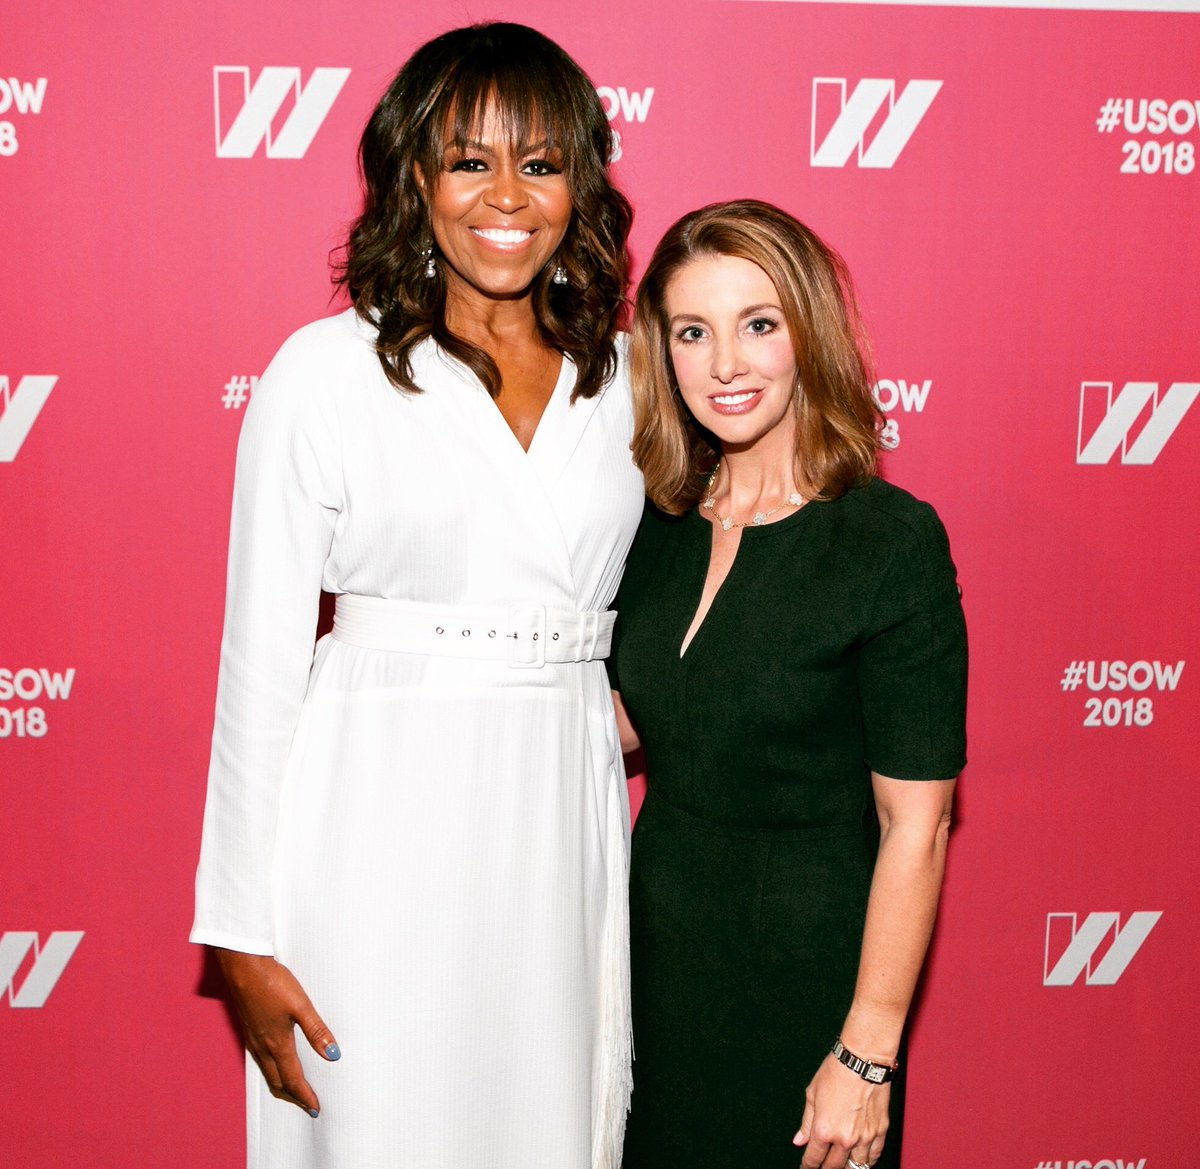 Happy birthday, Michelle Obama! I was so overwhelmed when I met her that I had no words, so I just did a prayer bow. I'm sure she thought it was odd, but that was what I went with.